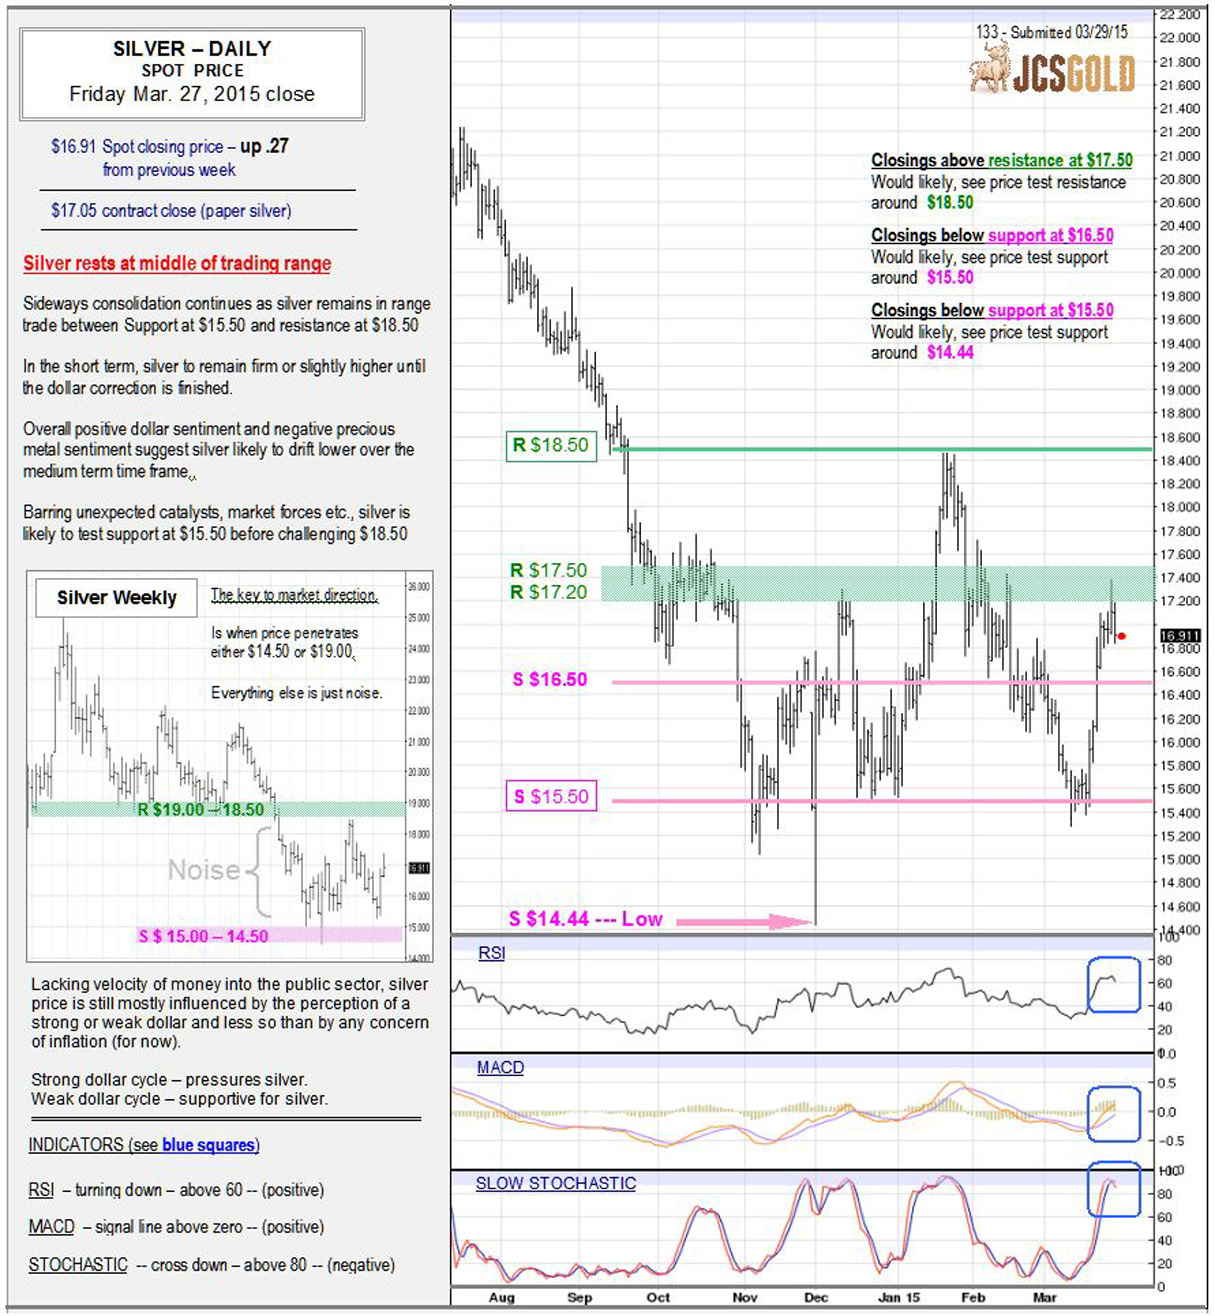 Mar 27, 2015 chart & commentary